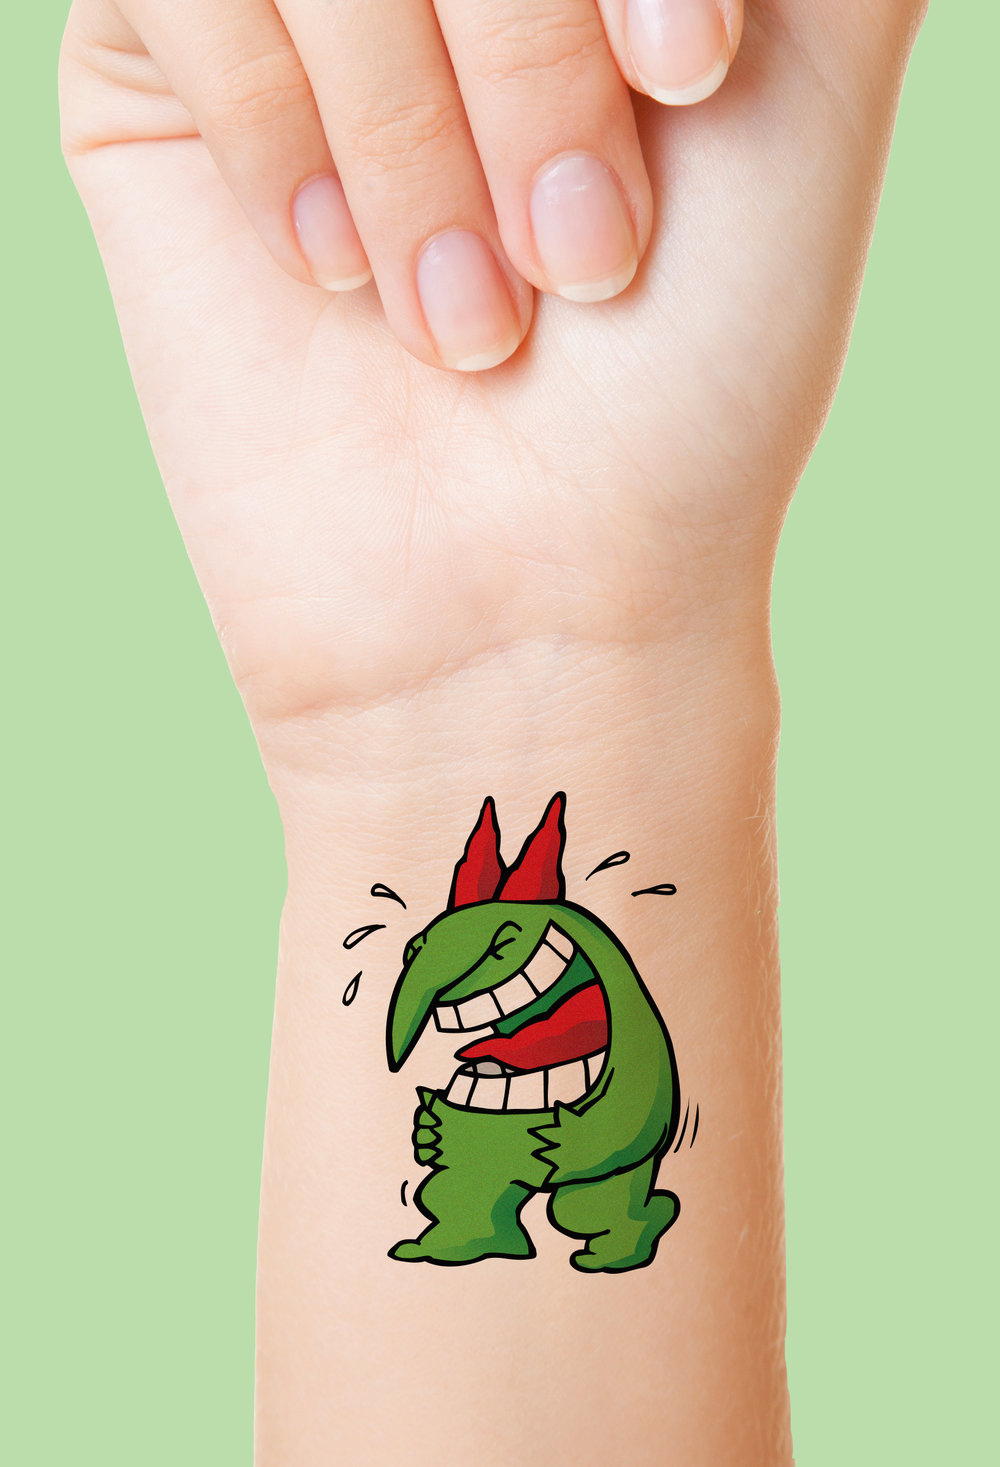 JUSTE POUR RIRE / Tattoo  Impression, promotion